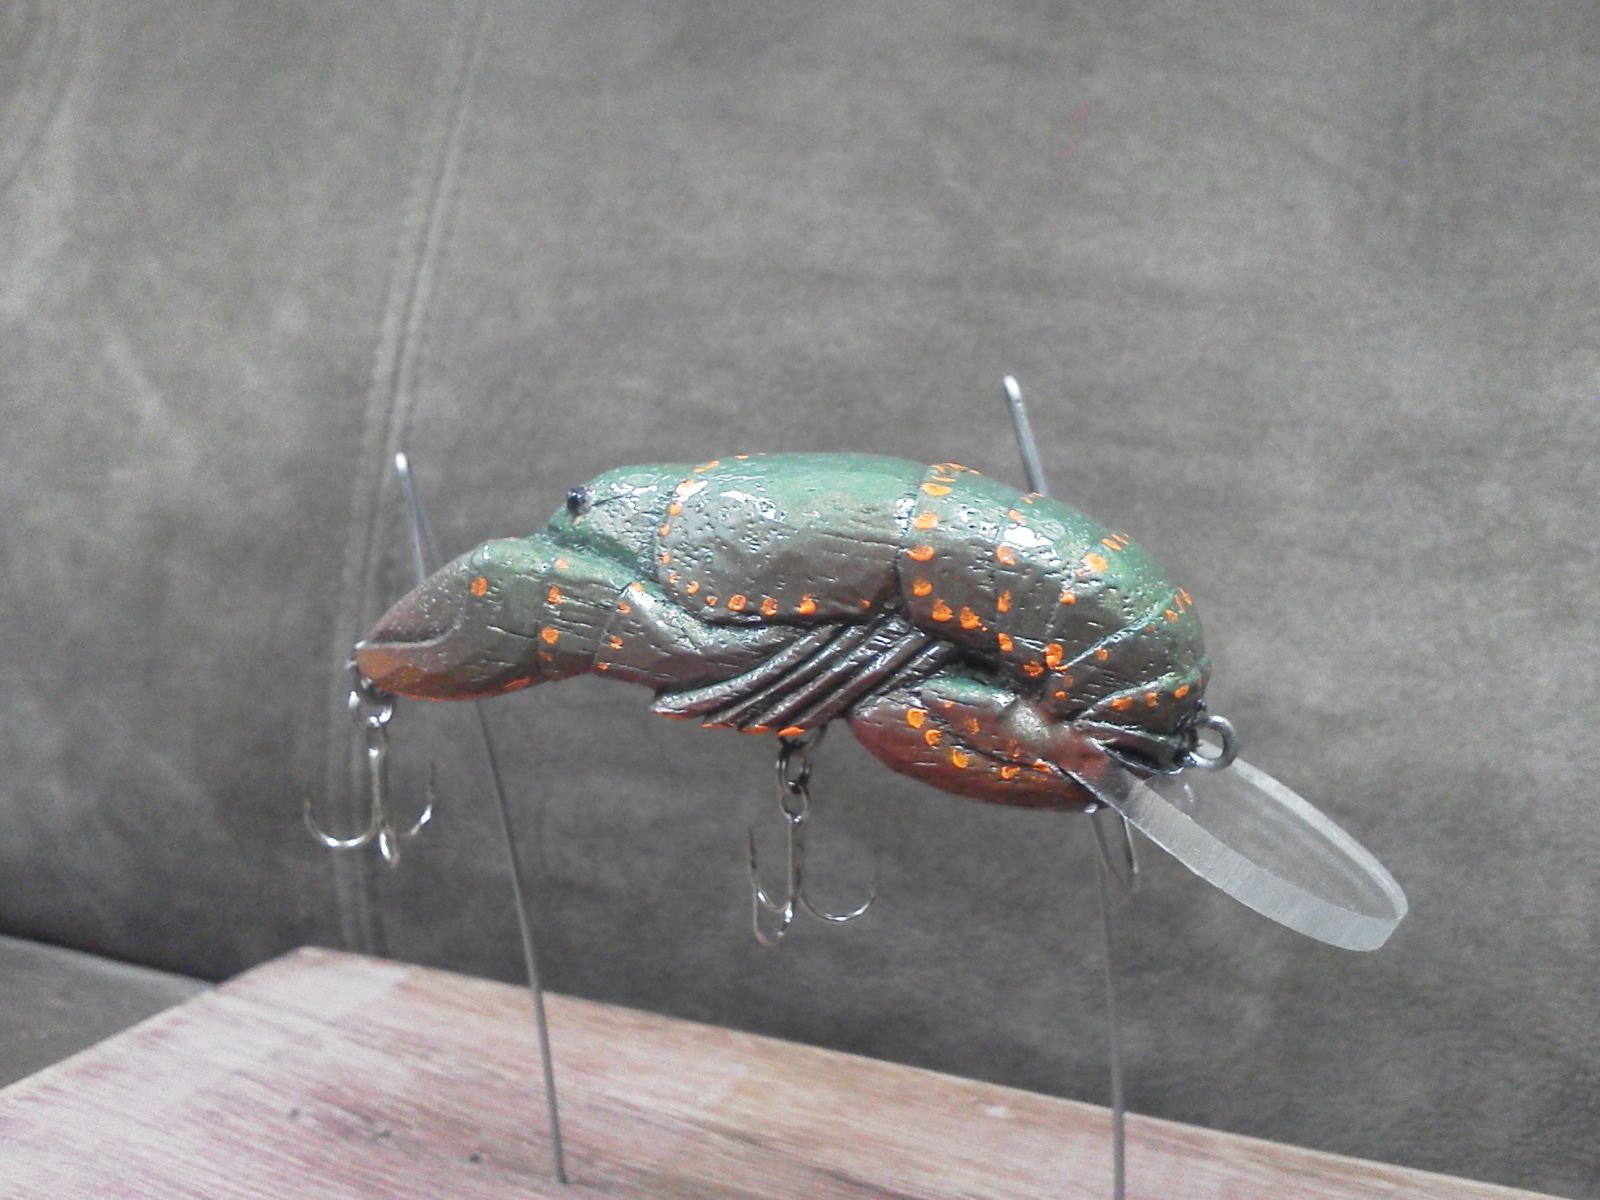 Carved craw